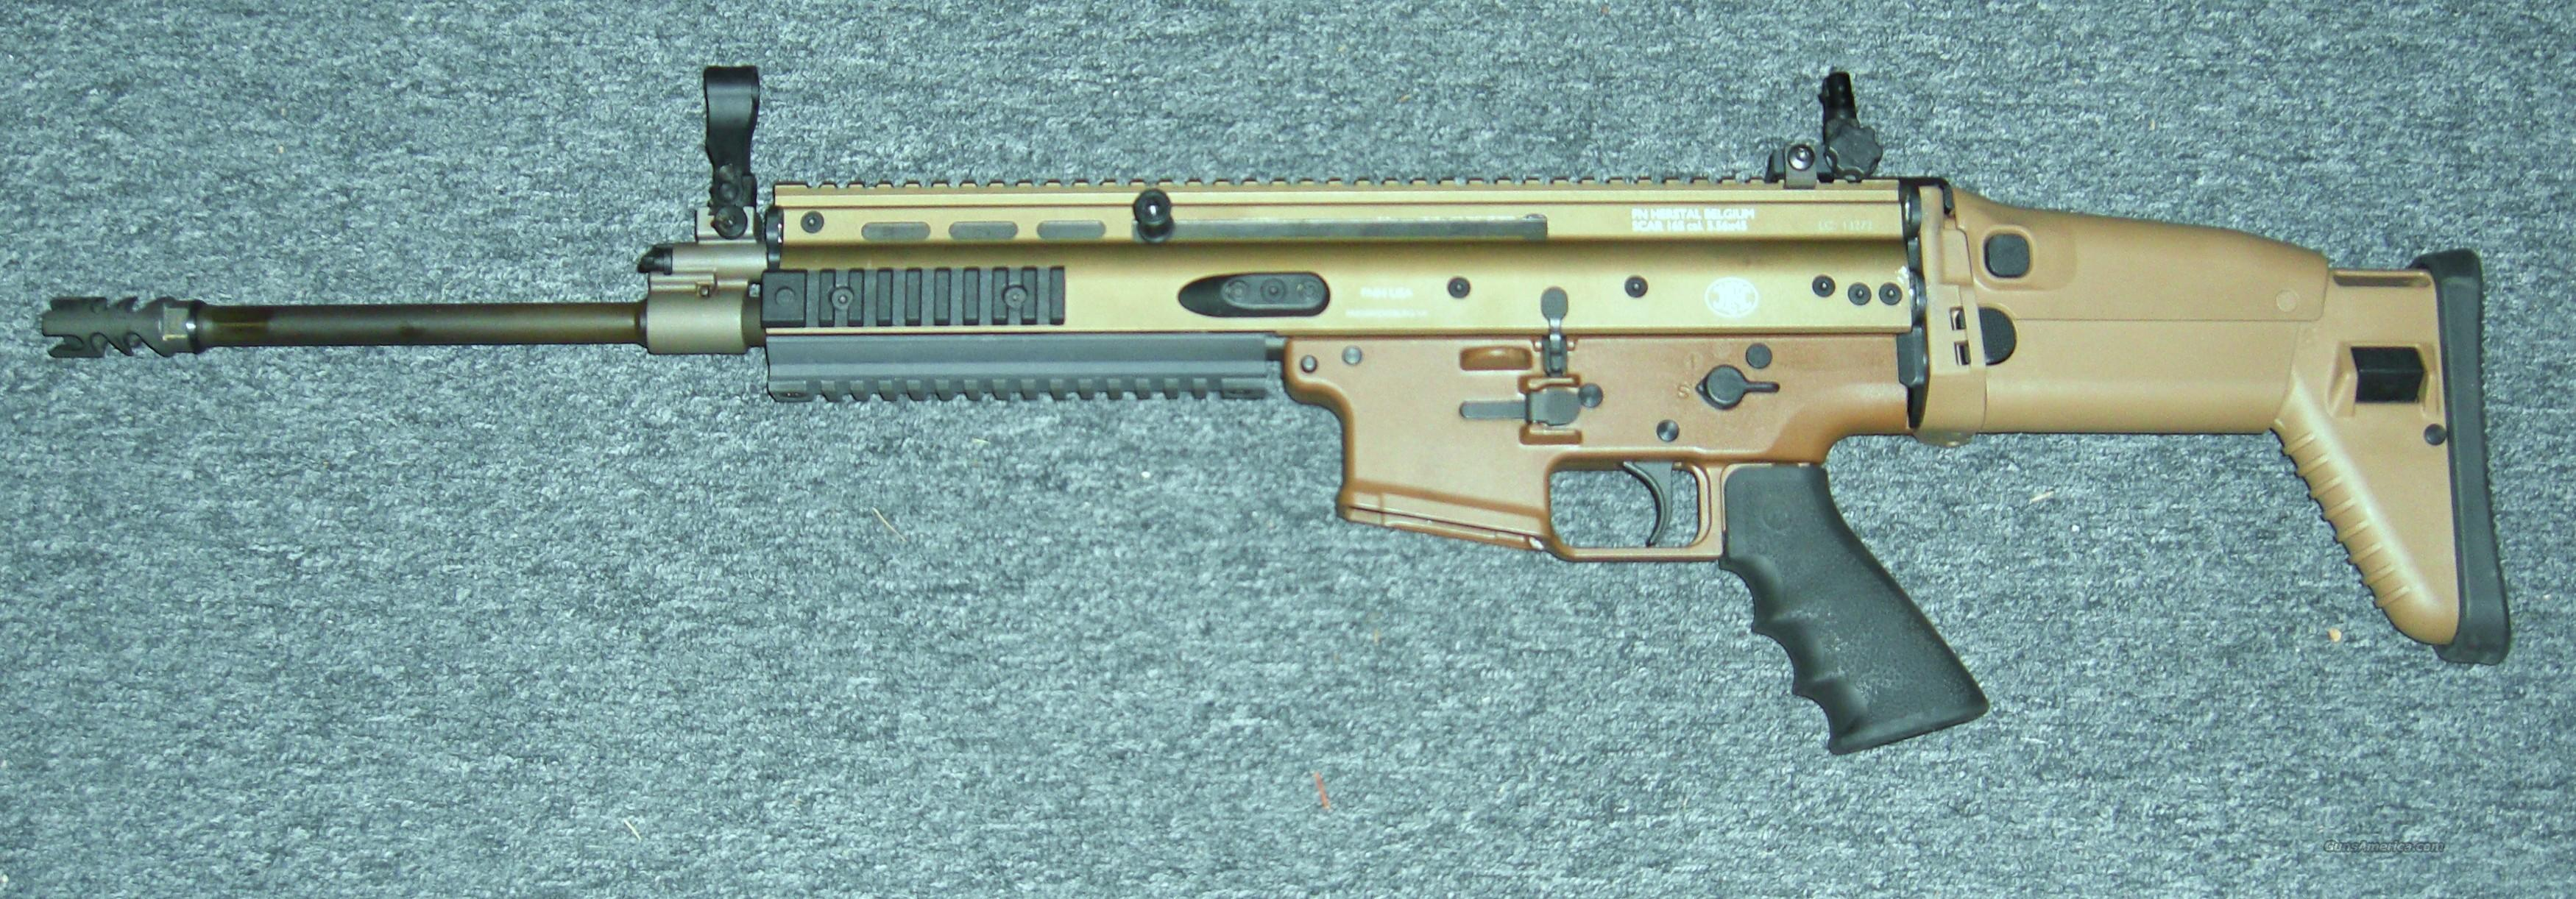 SCAR16S  dark earth  Guns > Rifles > FNH - Fabrique Nationale (FN) Rifles > Semi-auto > Other